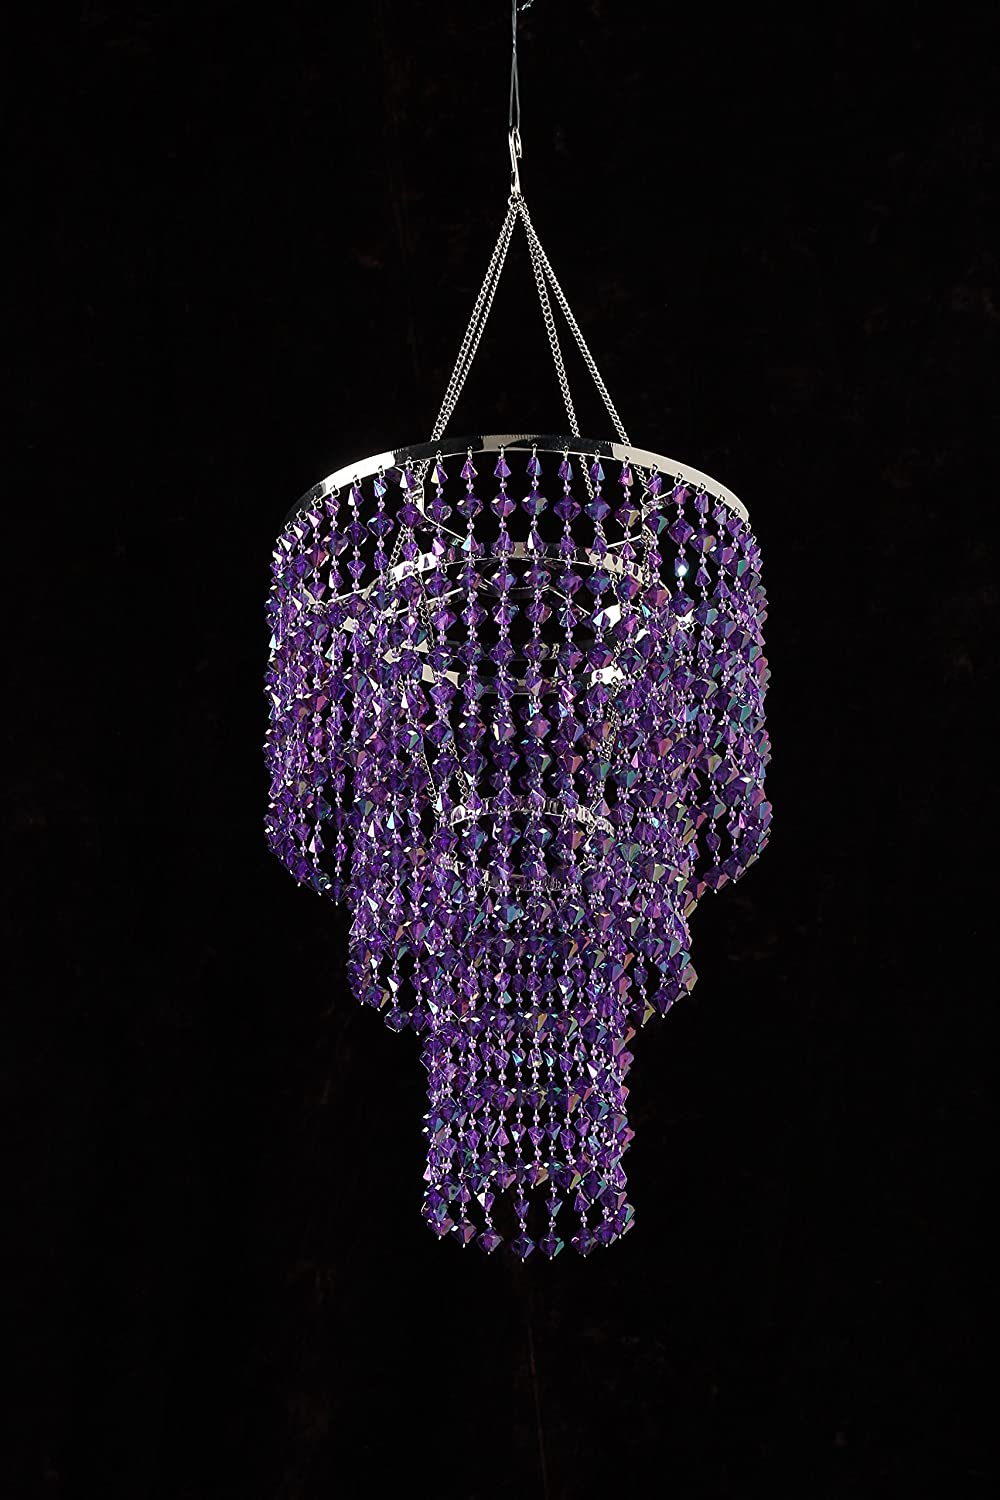 Zappobz hll14 gemstone chandelier purple amazon kitchen zappobz hll14 gemstone chandelier purple amazon kitchen home mozeypictures Images